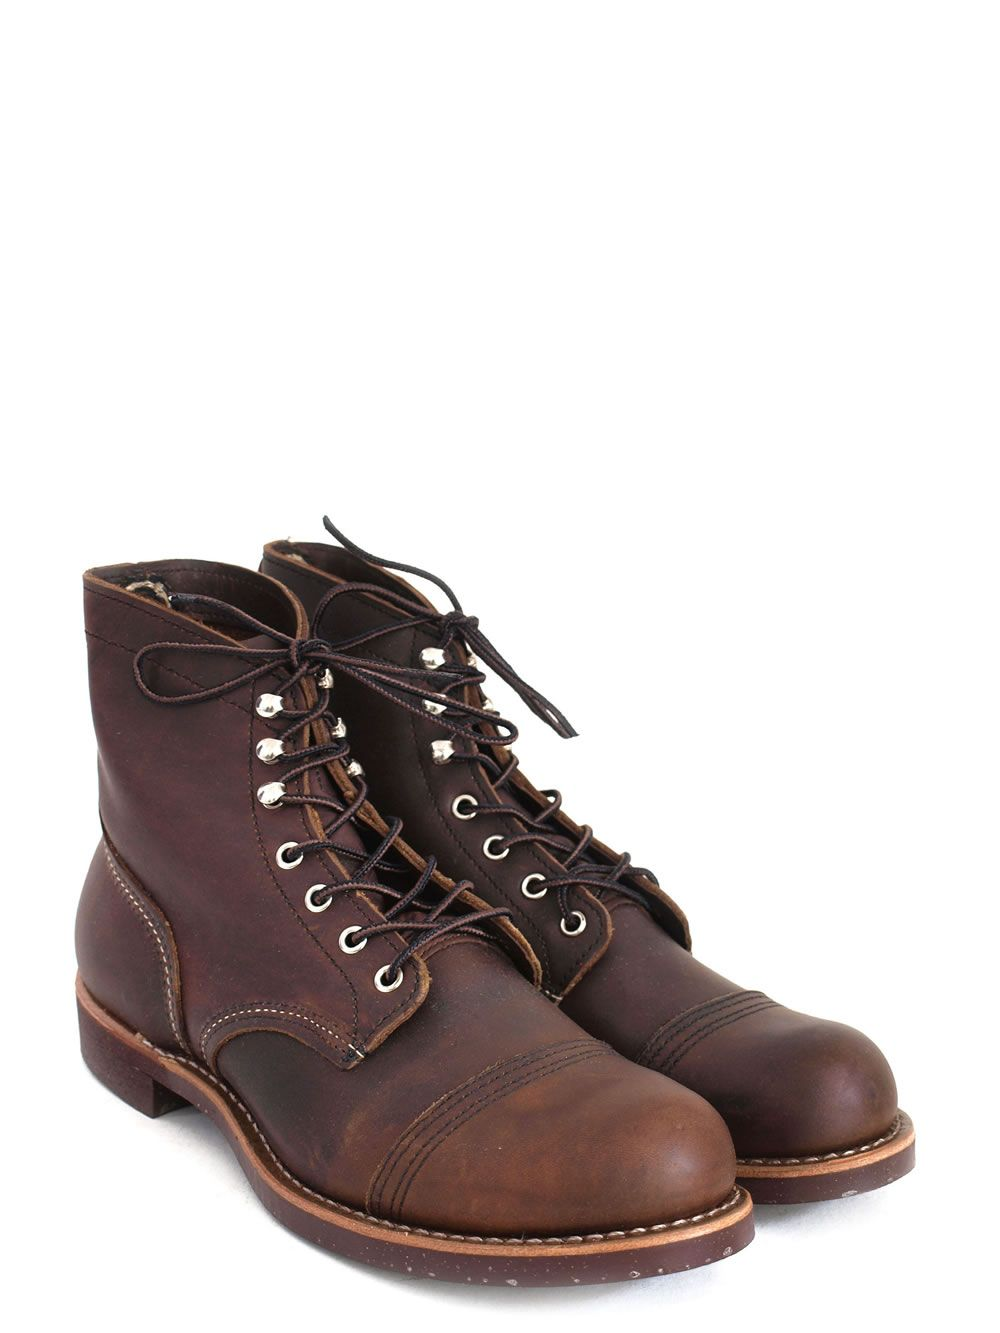 8111 iron ranger amber harness boots red wing shoes